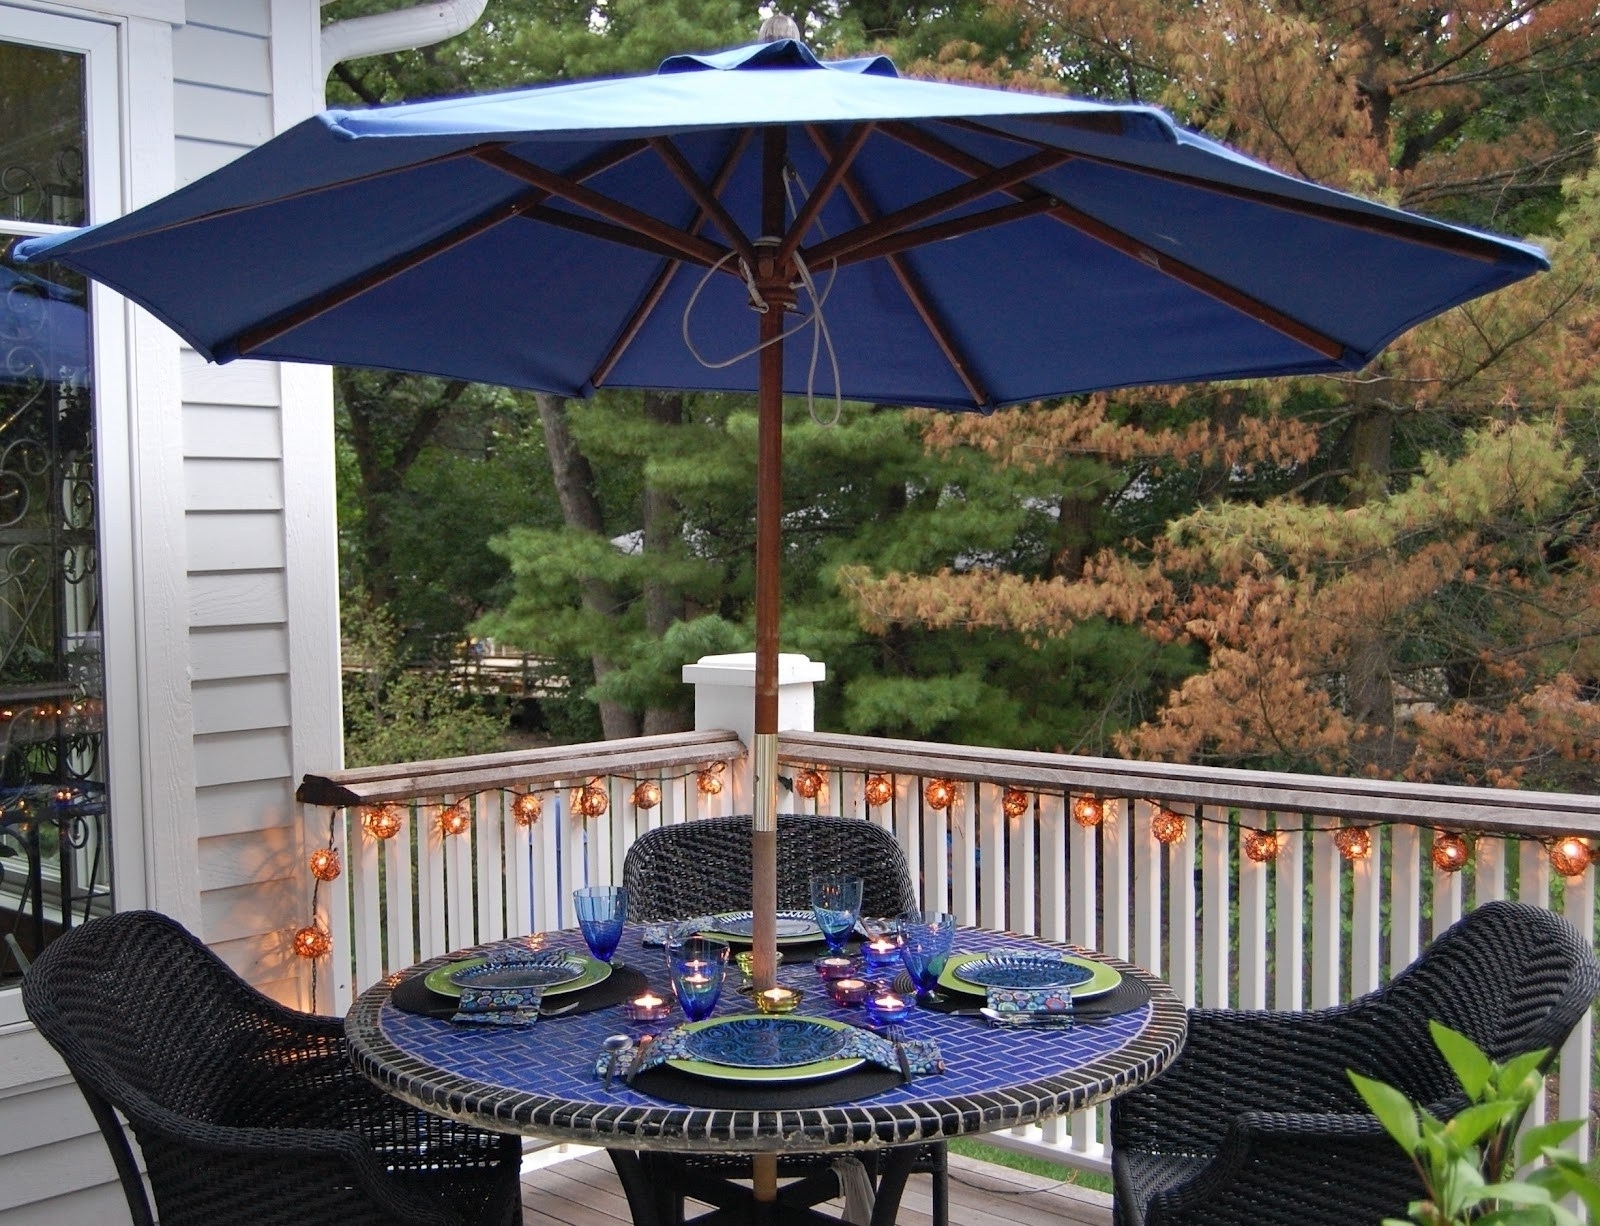 Current Small Patio Tables With Umbrellas Hole Intended For Small Patio Table With Chairs Balcony And Large Umbrella Hole Tables (View 6 of 20)